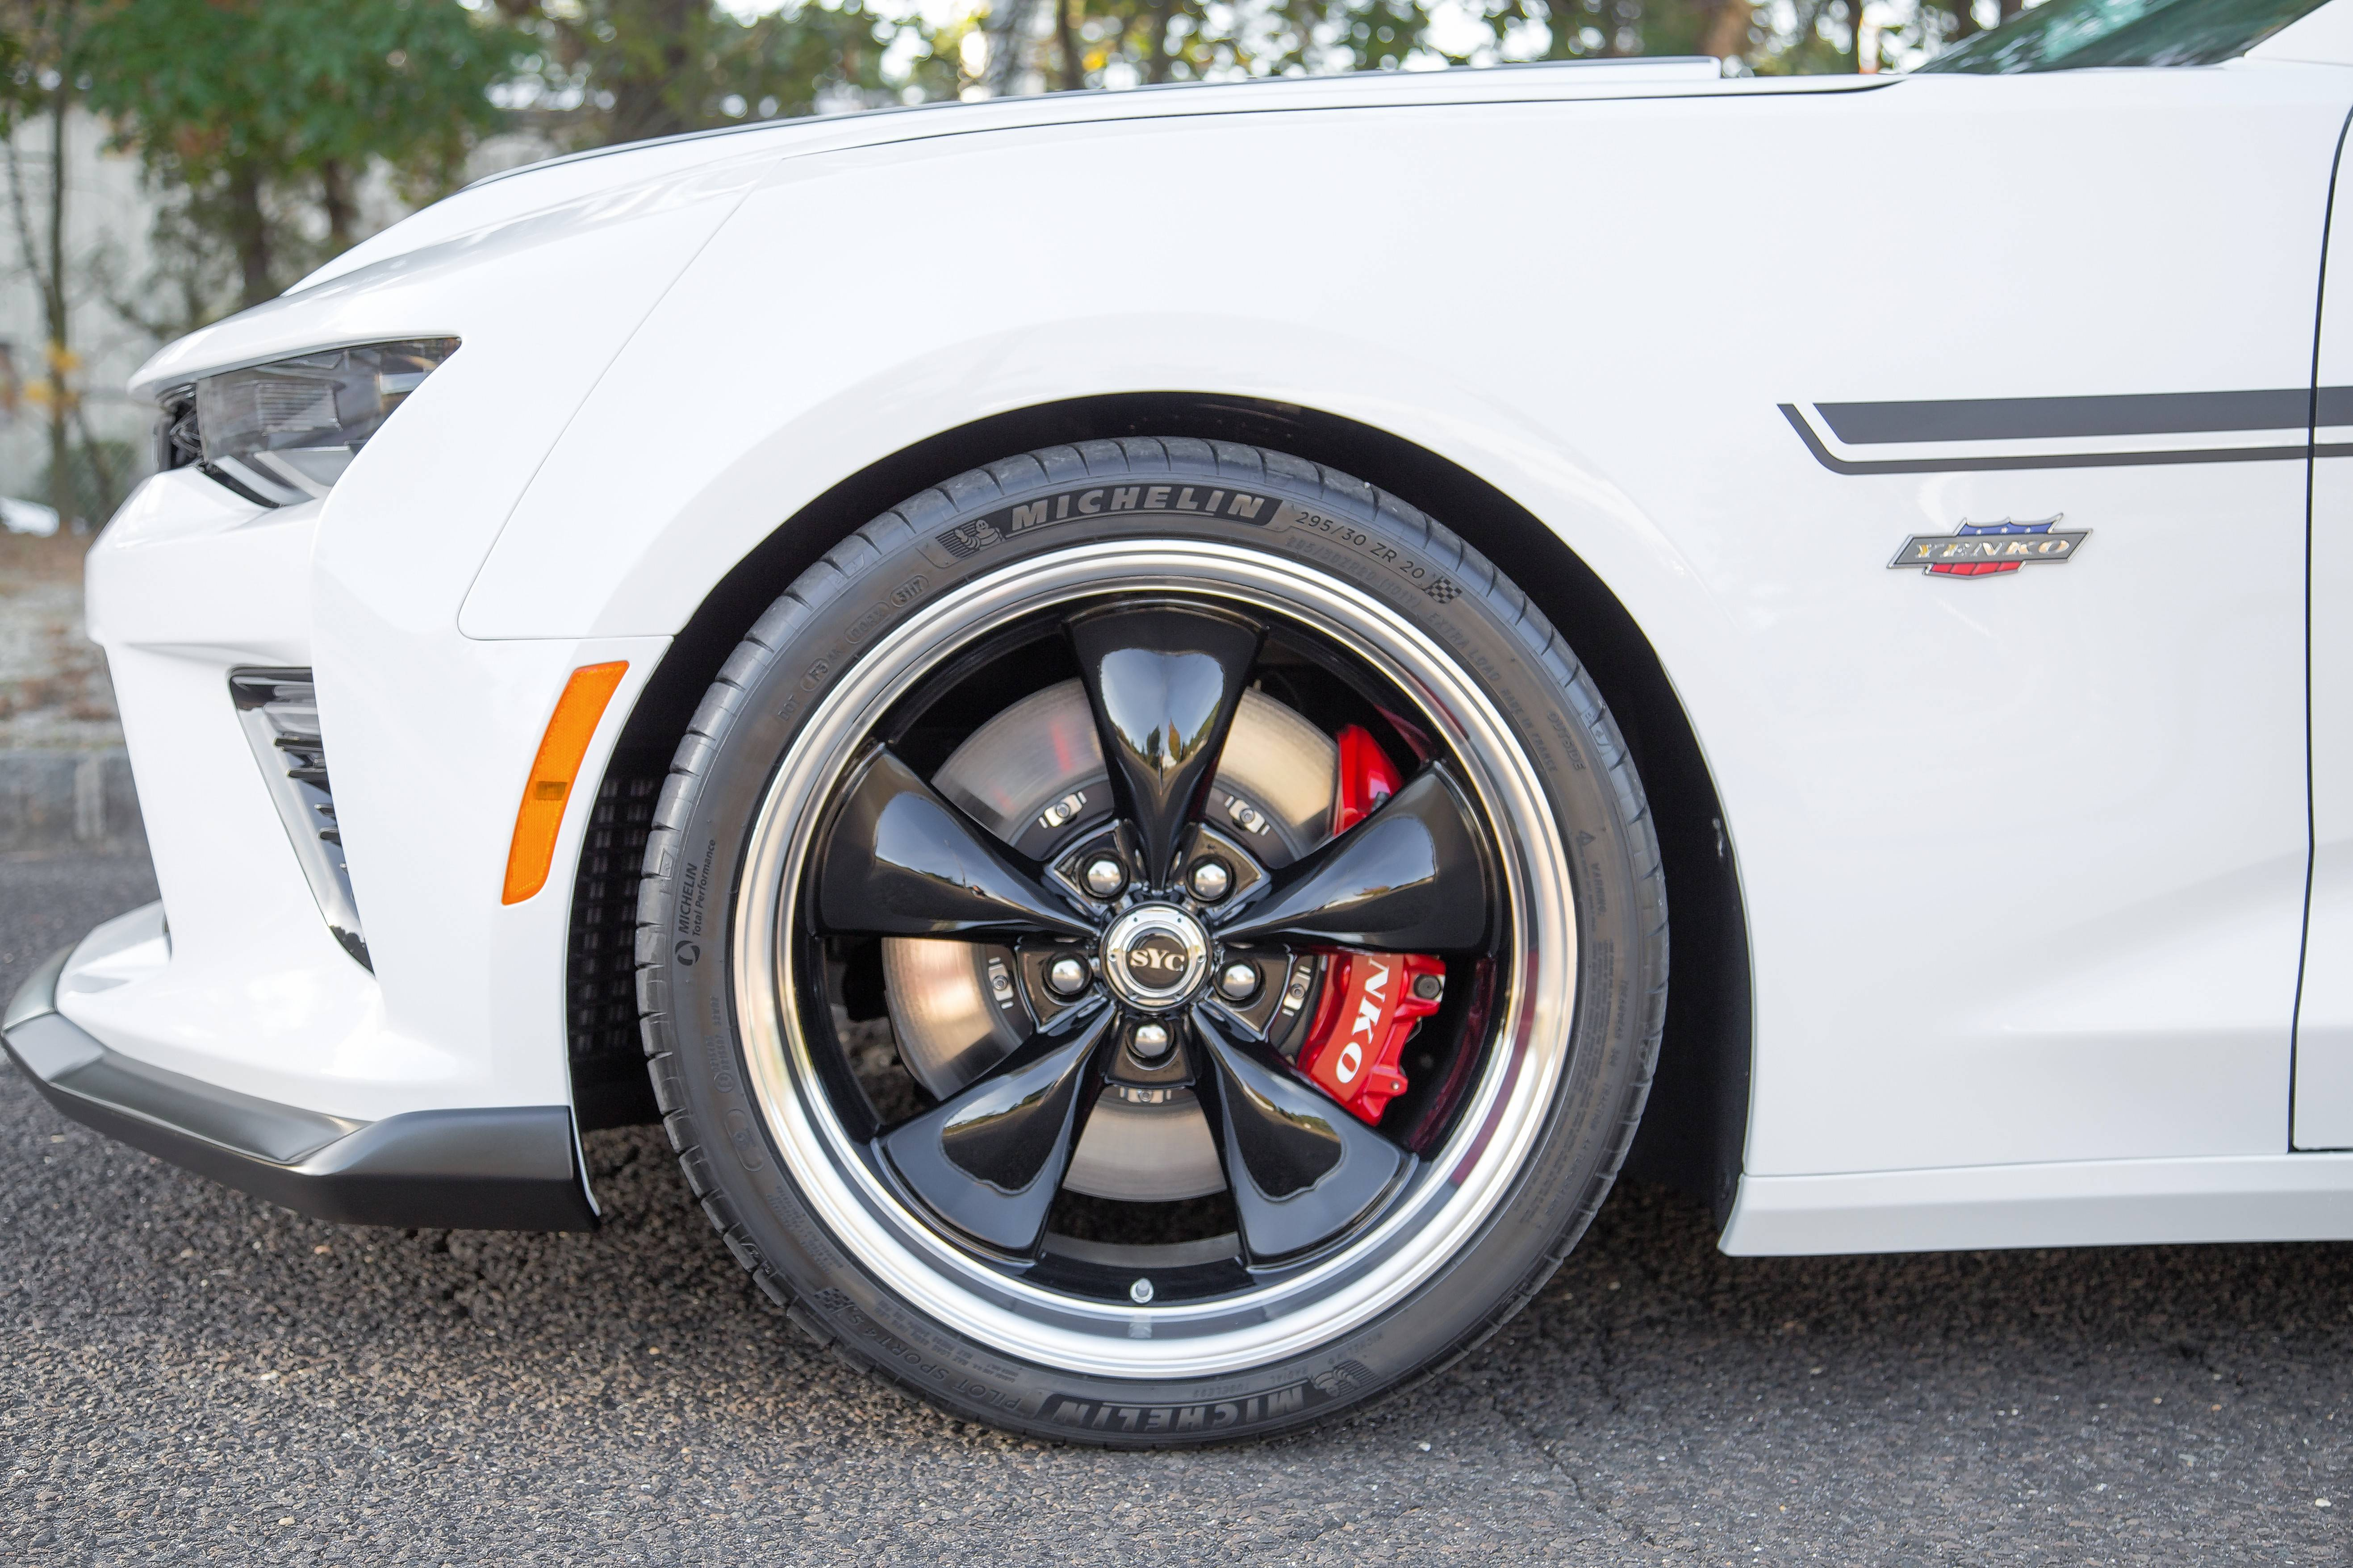 The special Camaro is equipped with Brembo brakes with six-piston front calipers and 14.5-inch rotors.